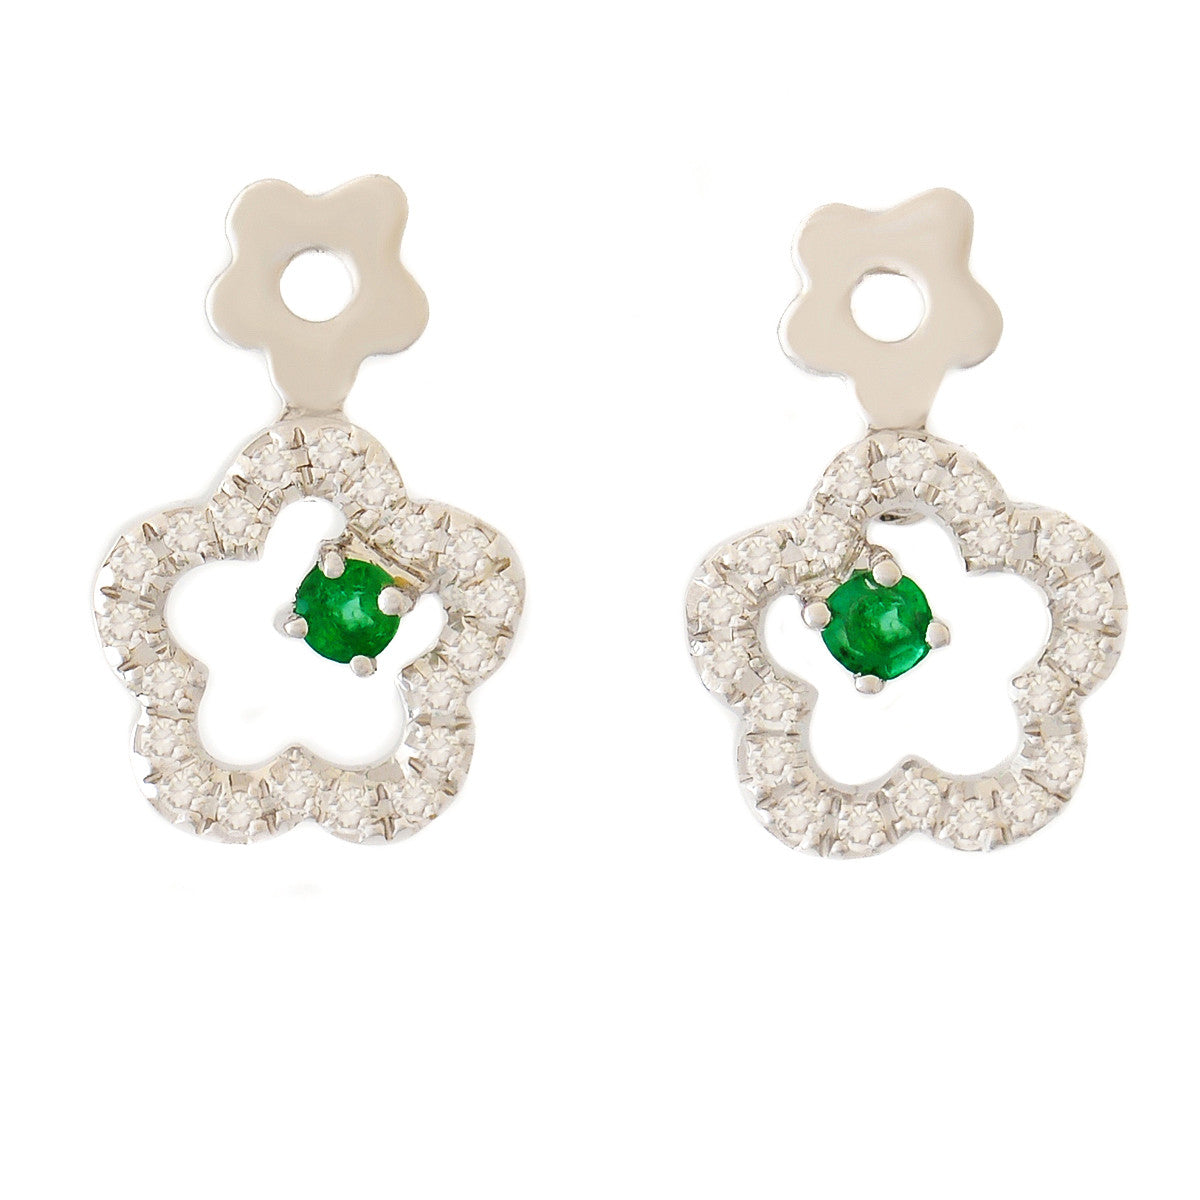 9K SOLID WHITE GOLD FLORAL INSPIRED NATURAL EMERALD EARRINGS WITH 40 DIAMONDS.